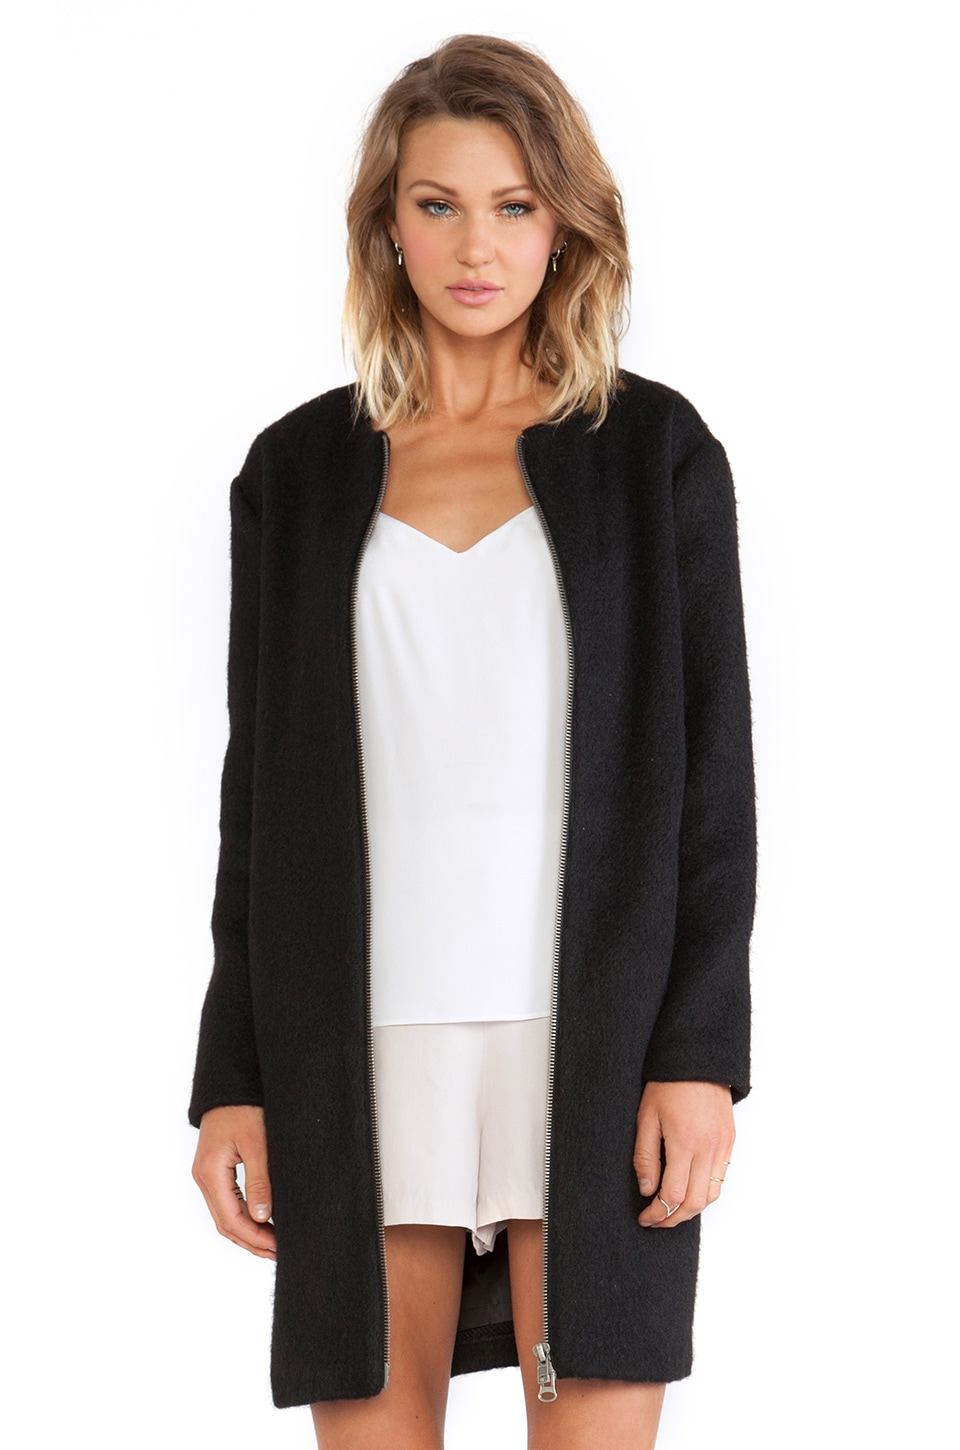 BB Dakota Liezel Wool Zip Up Coat in Black